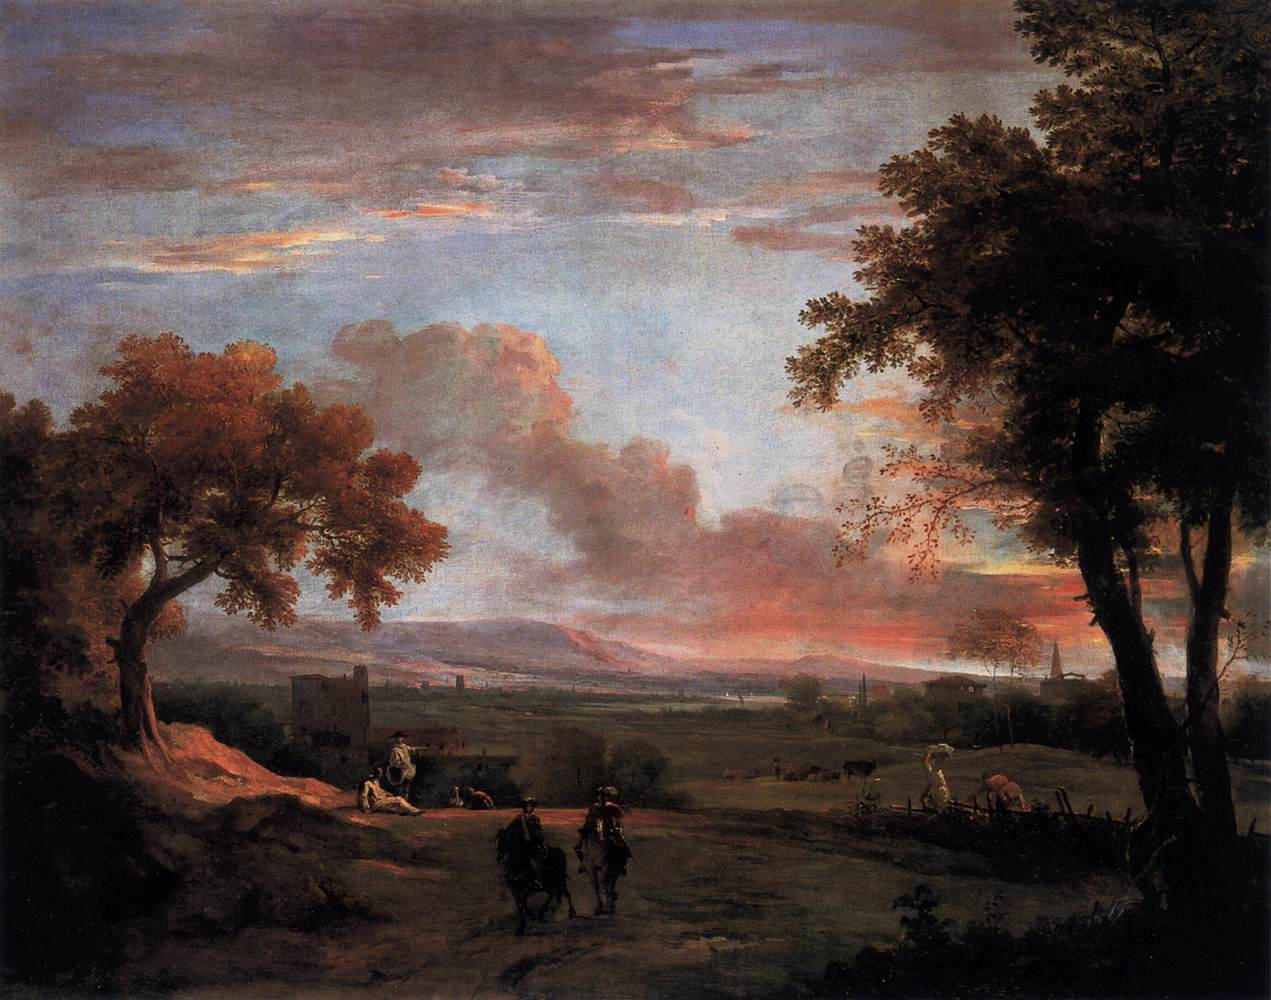 Southern Landscape at Twilight